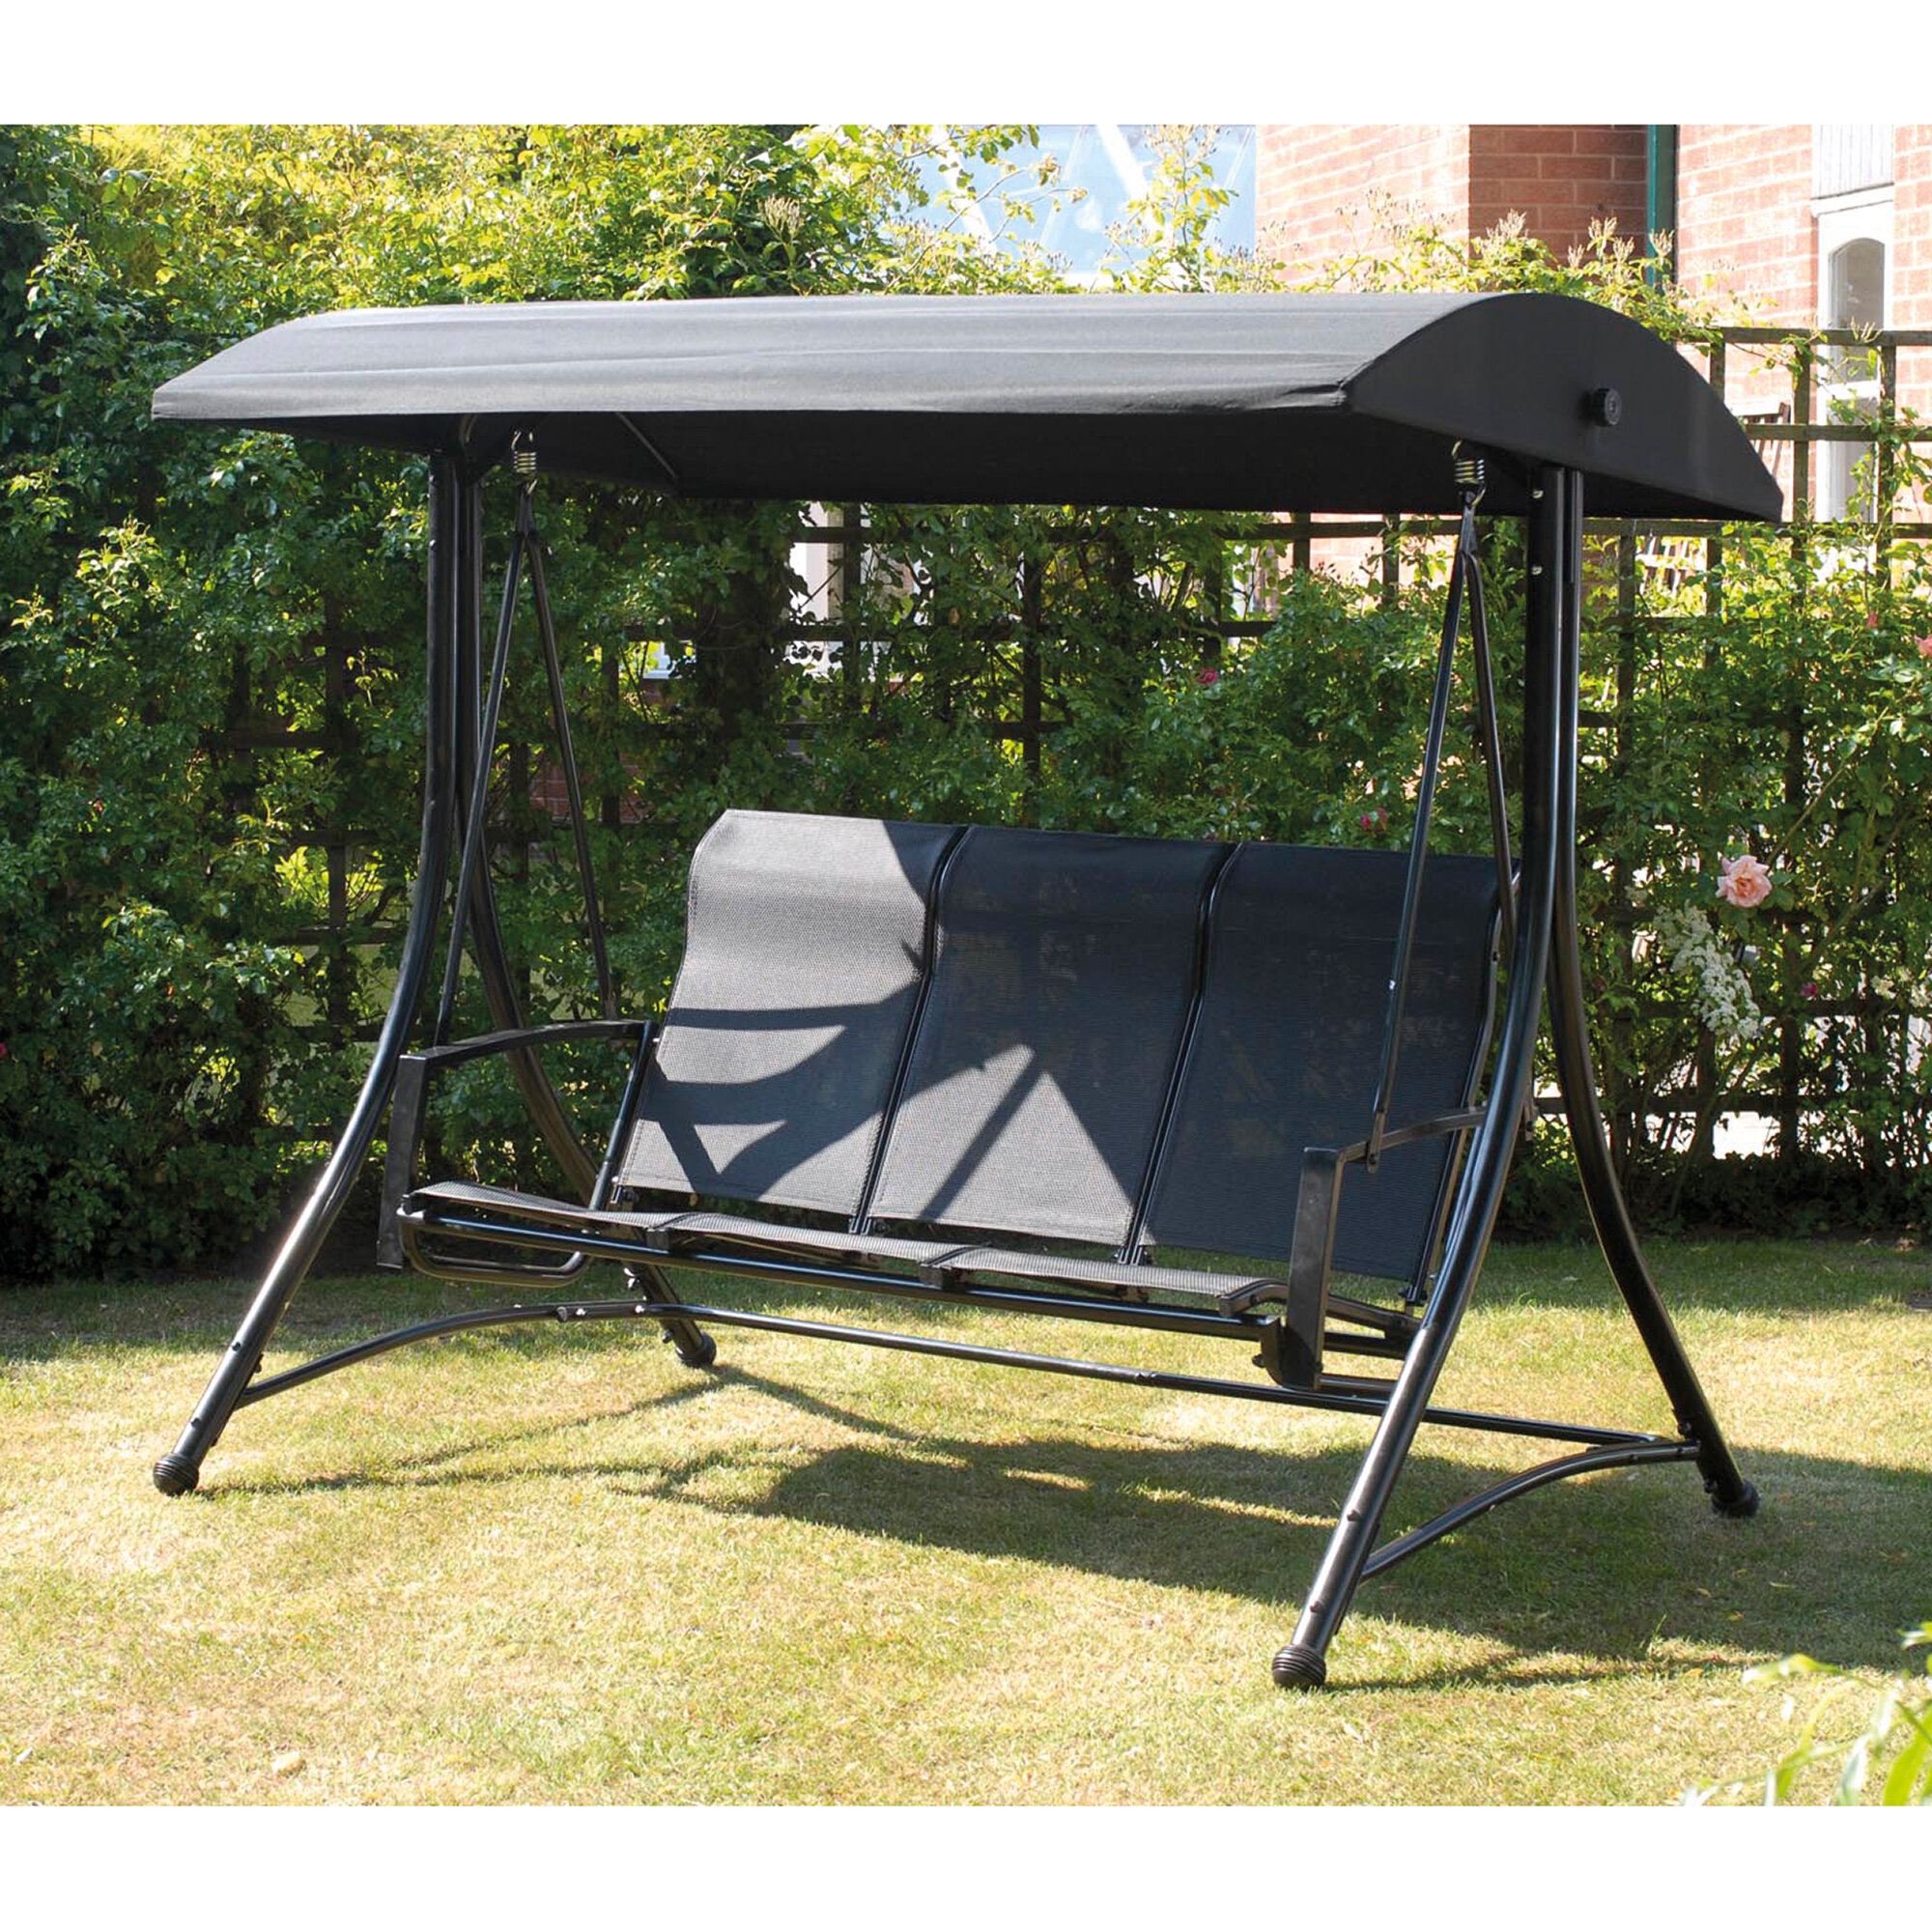 Burnstad Porch Swing With Stand Regarding Outdoor Pvc Coated Polyester Porch Swings With Stand (View 18 of 25)